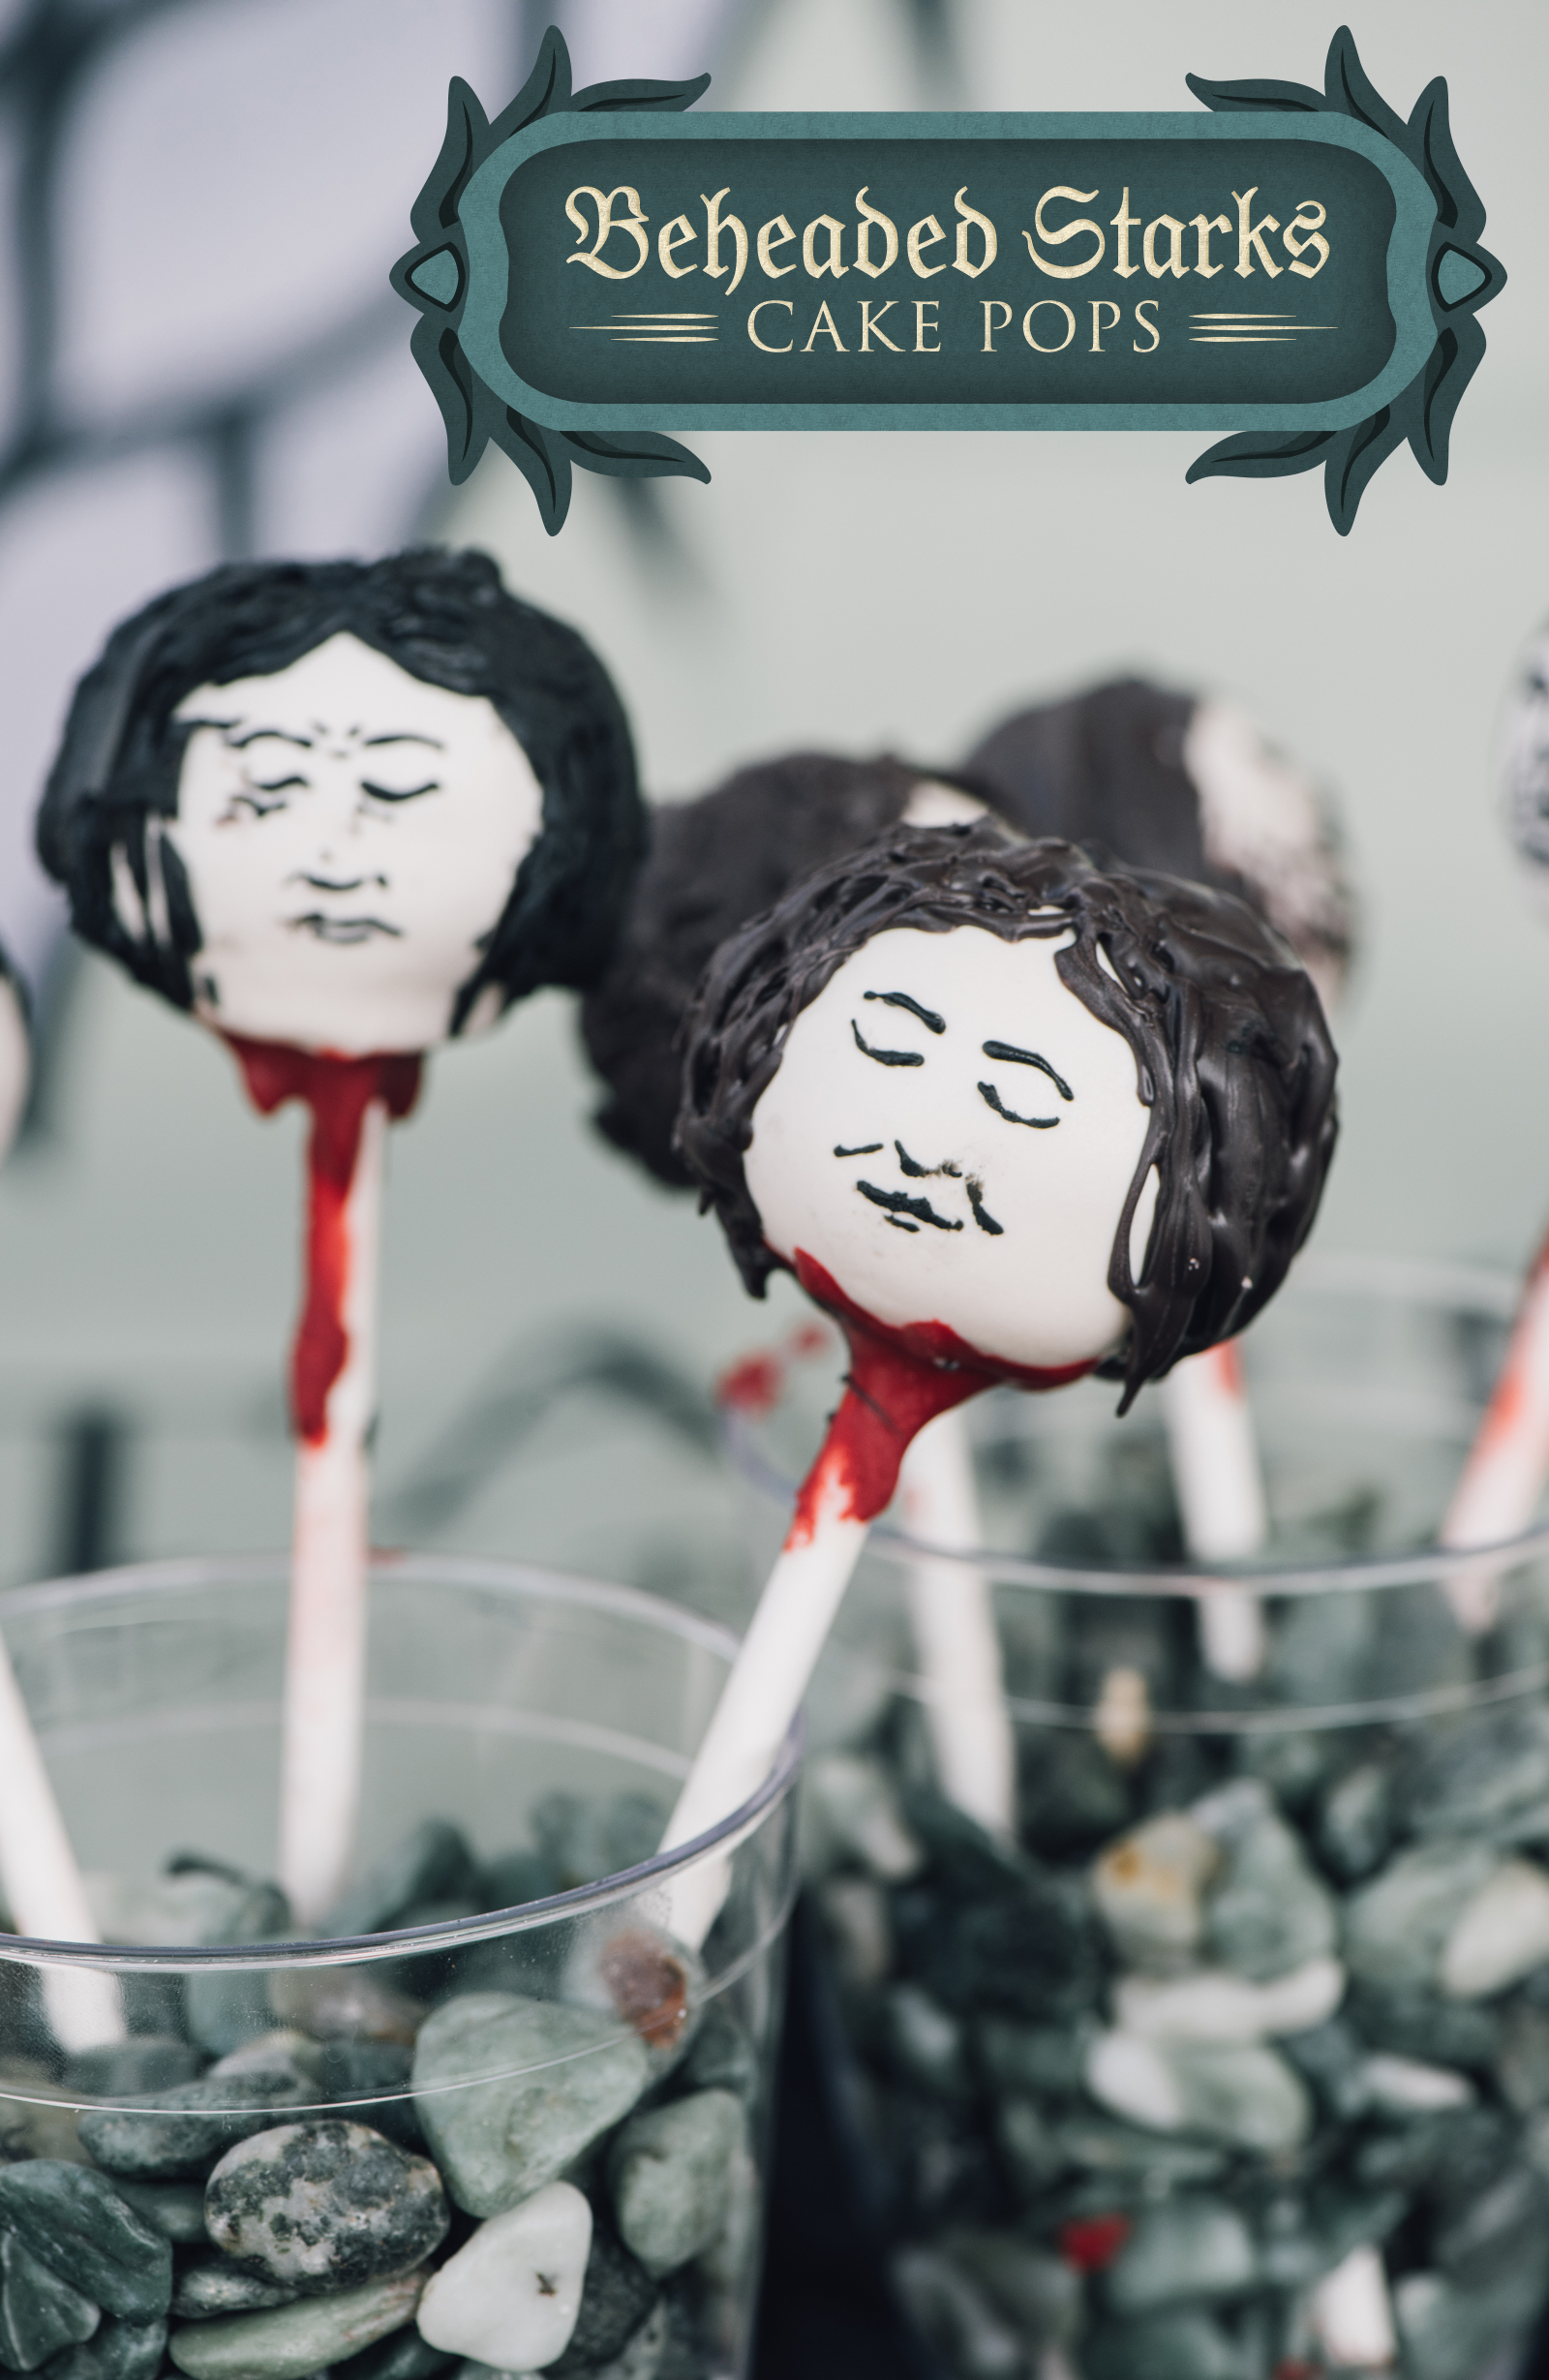 I love the Starks dearly, so I feel very guilty about these lemon cake pops. But also not really, because they're fun, tasty, and a Pinterest favorite.